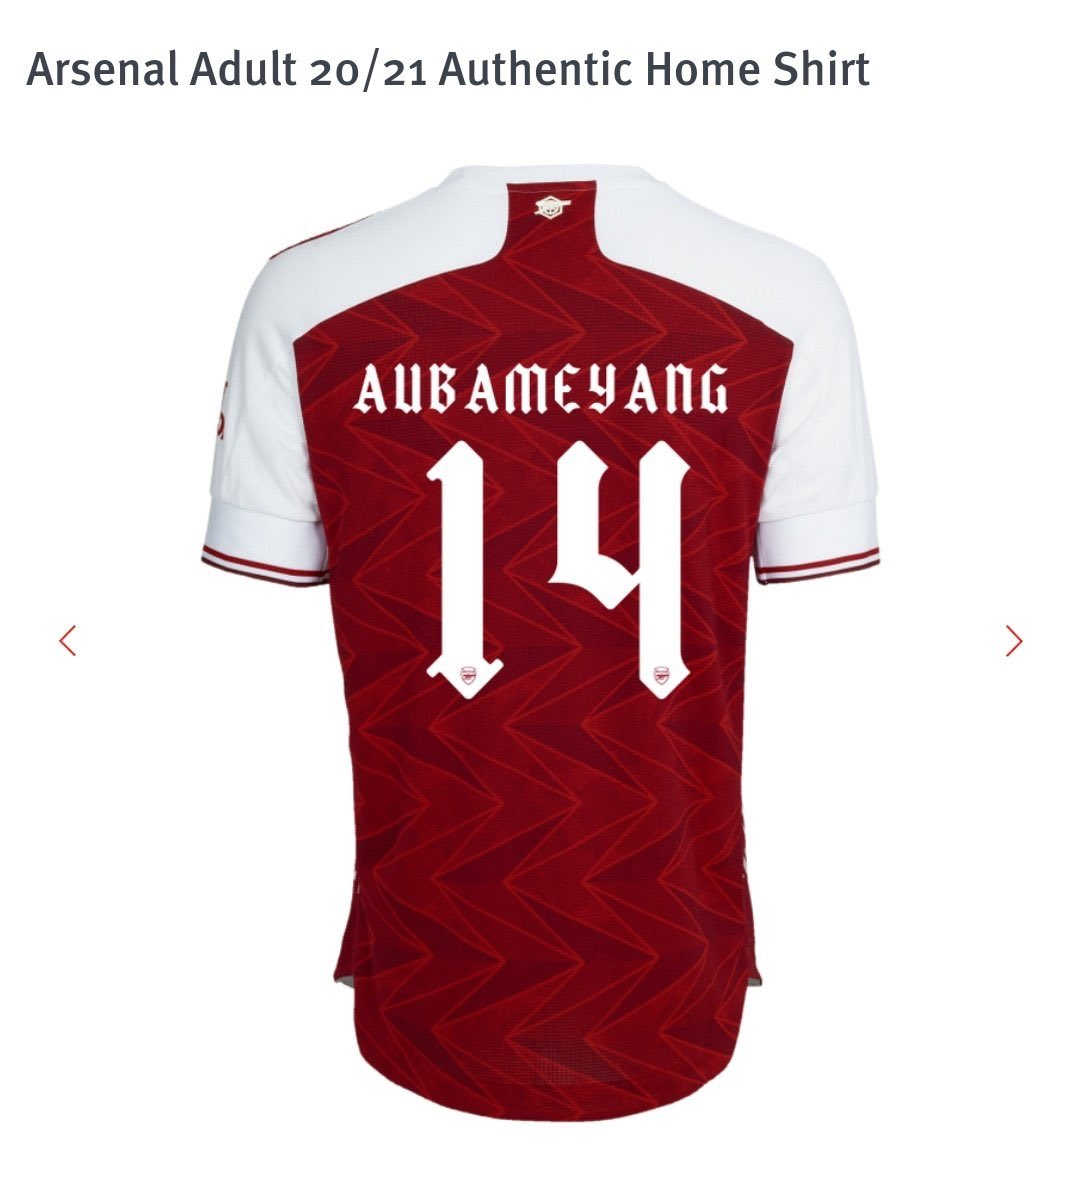 Afcstuff On Twitter Image Font On Arsenal S Home Kit For The 2020 21 Season To Be Used In Domestic Cup European Competitions Afc